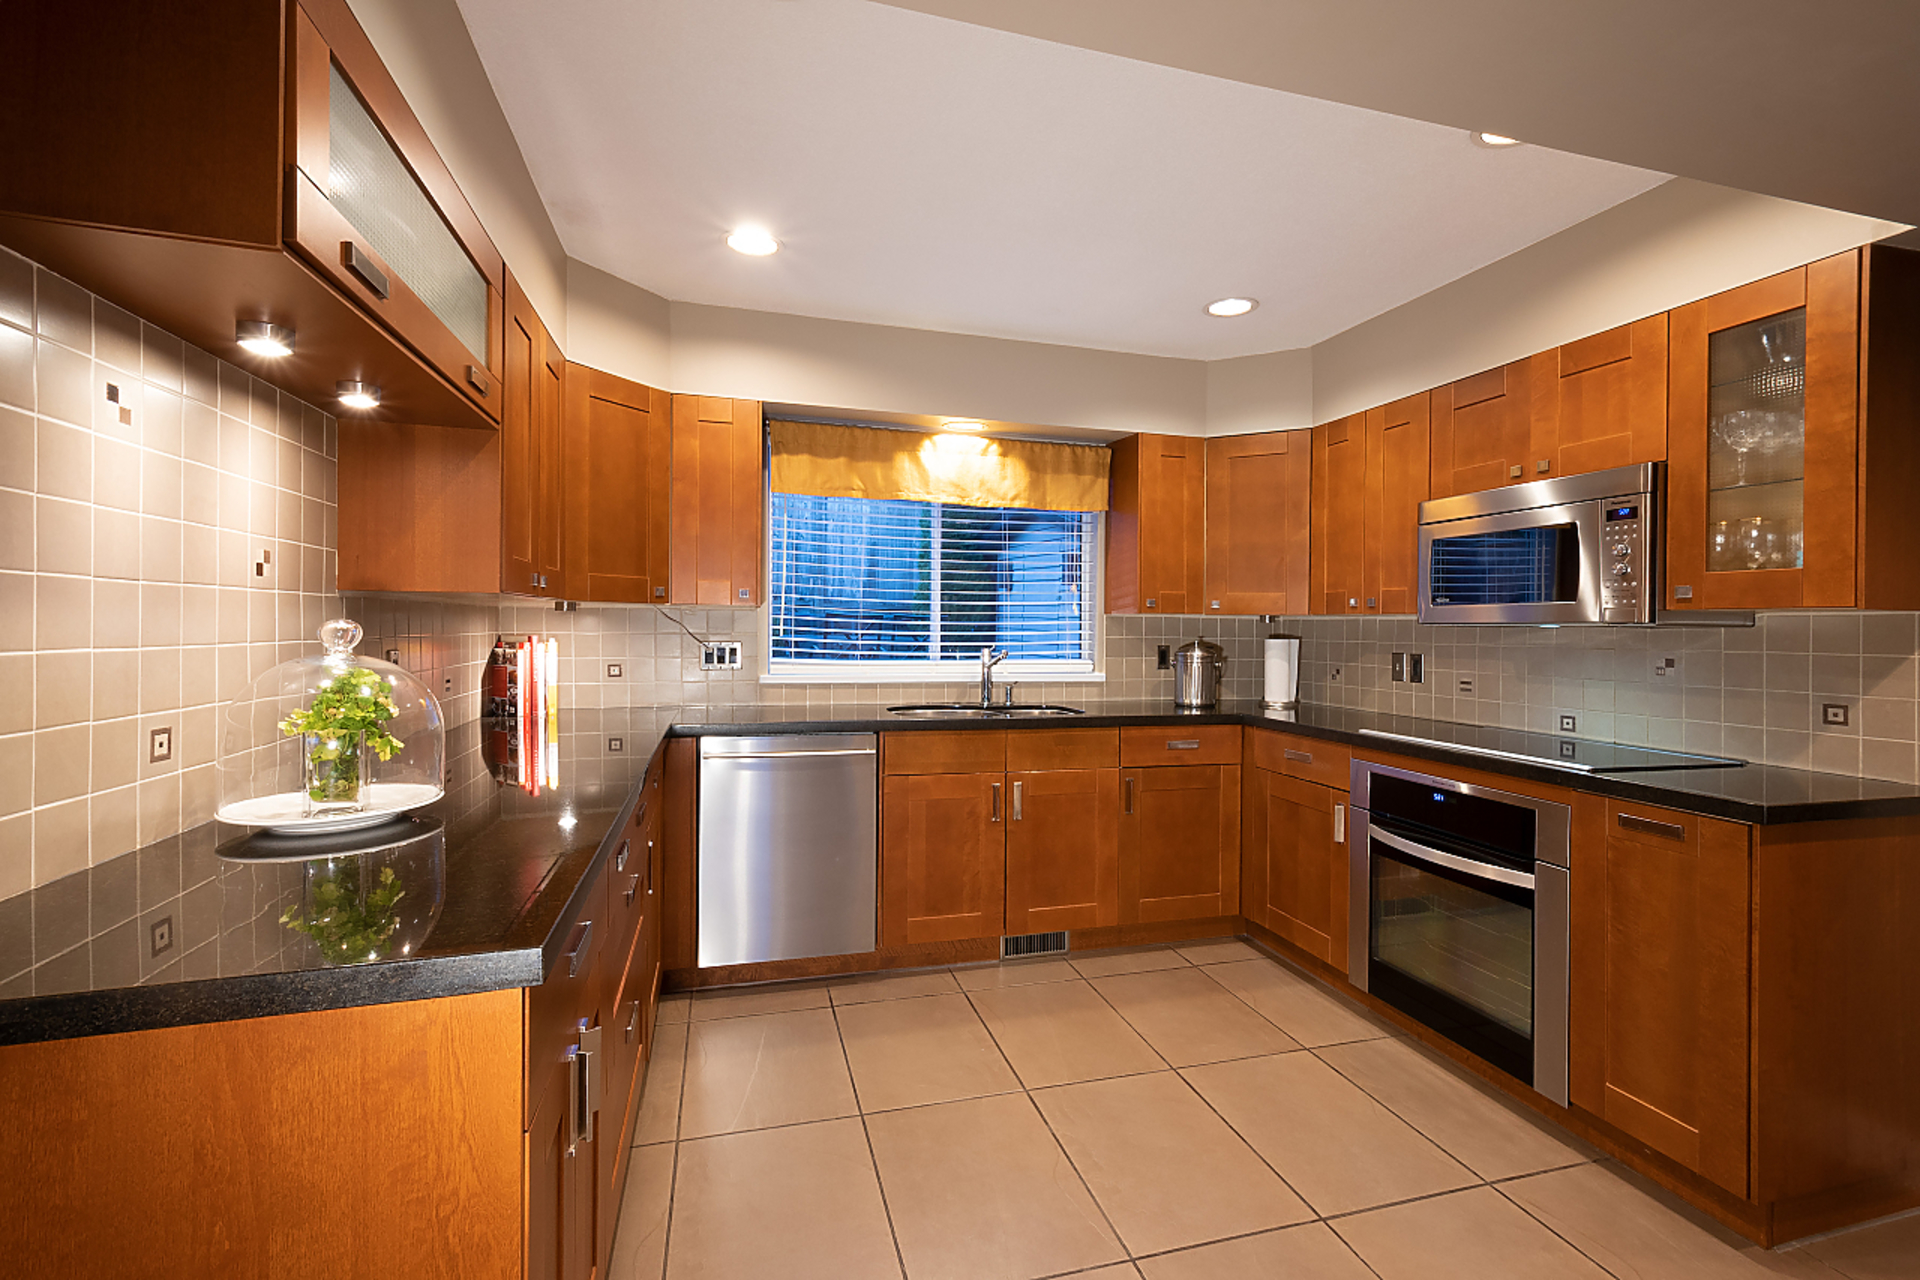 011a at 202 Ravine Drive, Heritage Mountain, Port Moody